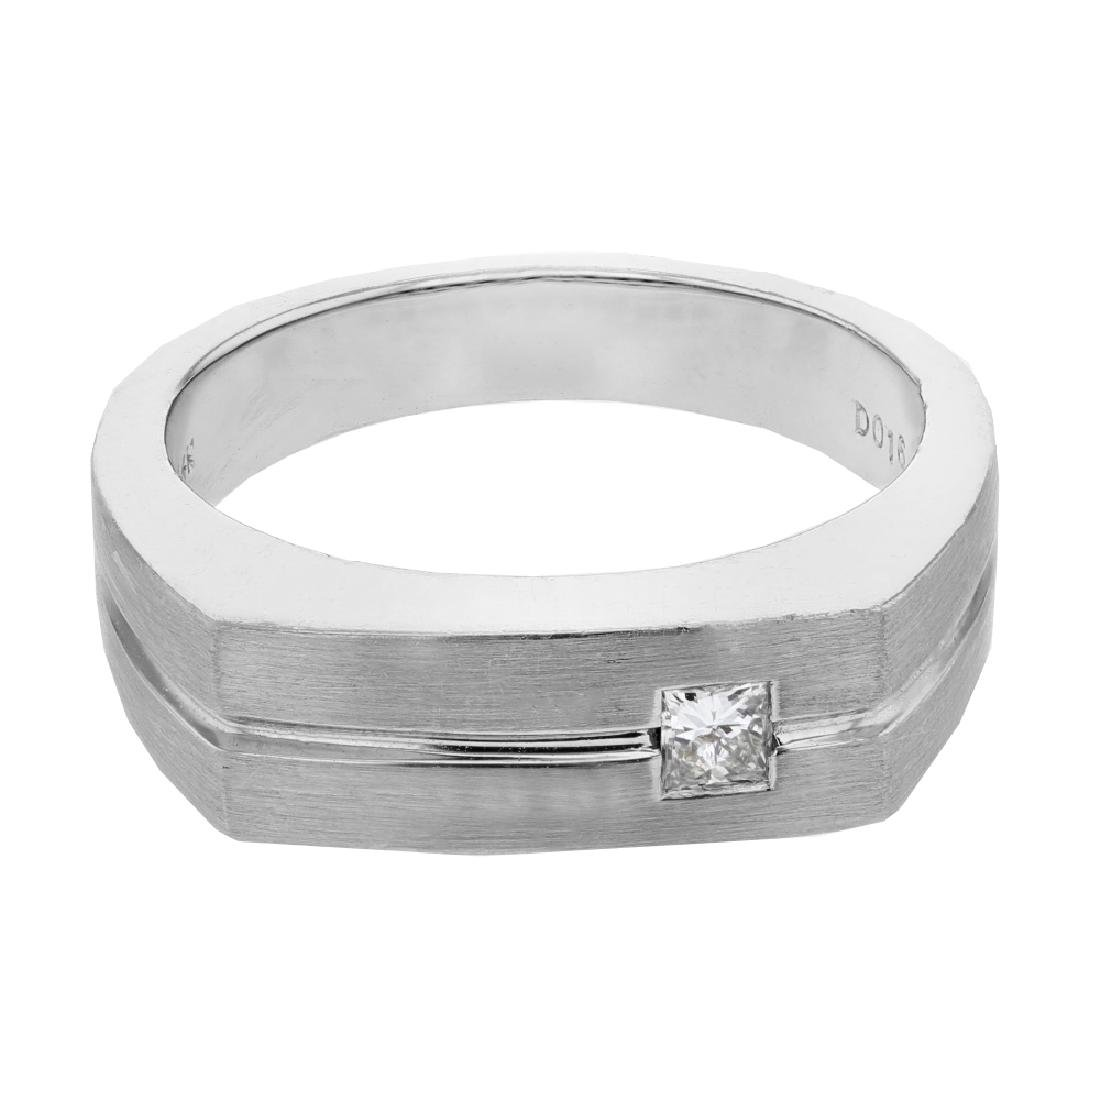 0.16 CTW 14K White Gold Gents Ring